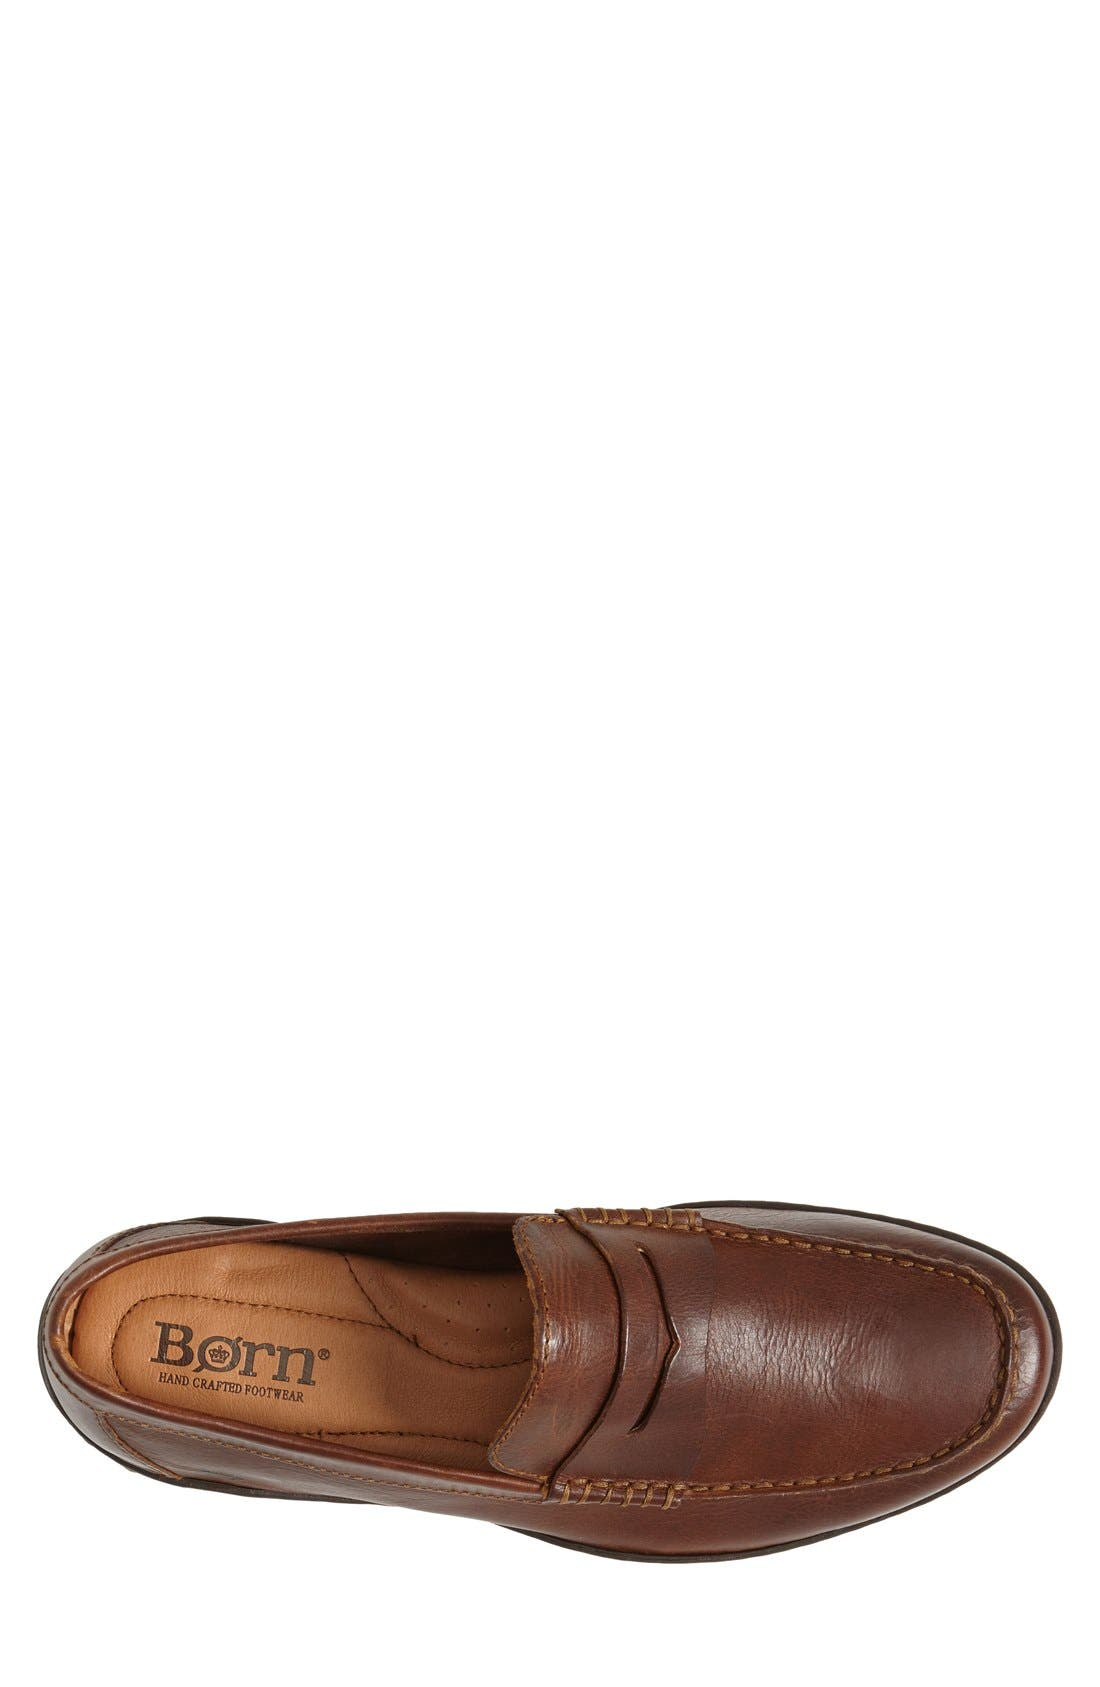 'Simon' Penny Loafer,                             Alternate thumbnail 2, color,                             CYMBAL